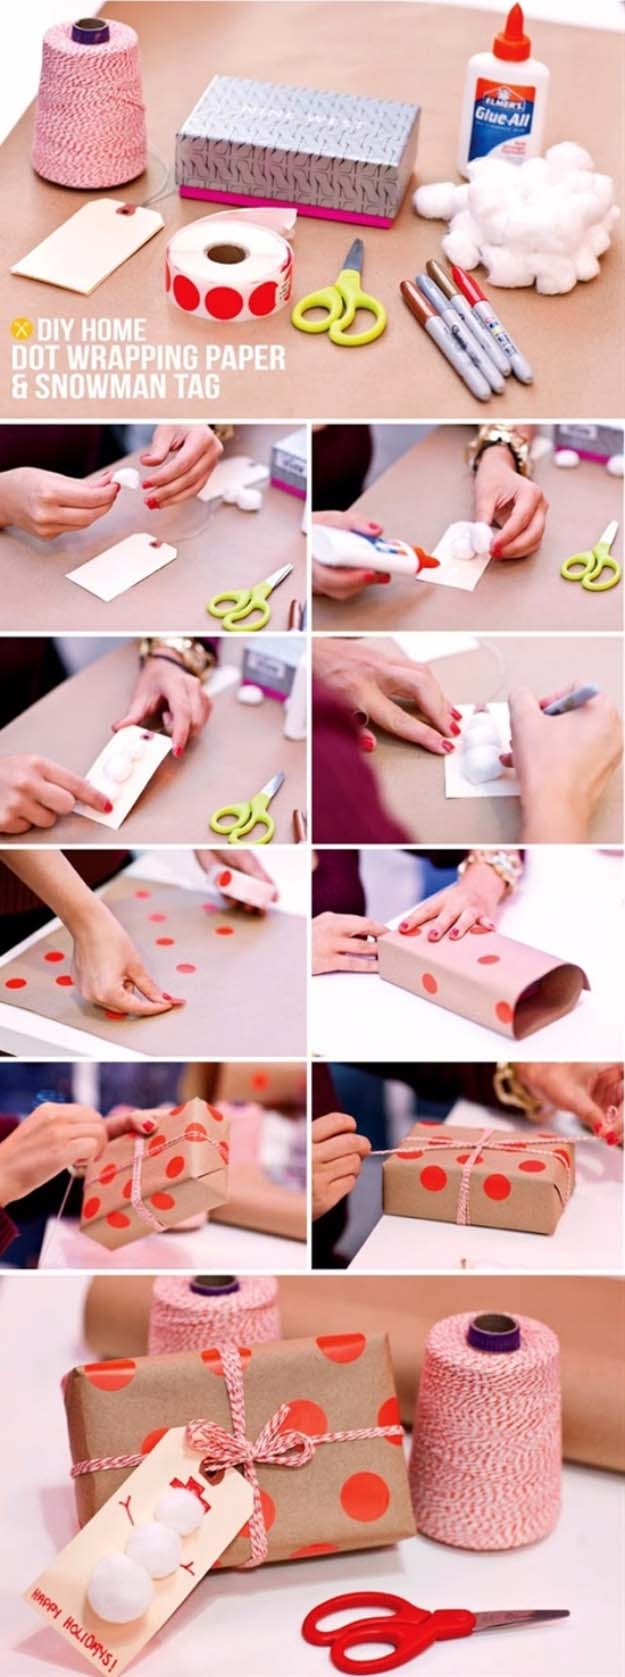 DIY Gift Wrapping Ideas - How To Wrap A Present - Tutorials, Cool Ideas and Instructions | Cute Gift Wrap Ideas for Christmas, Birthdays and Holidays | Tips for Bows and Creative Wrapping Papers | DIY Home Dot Wrapping Paper and Snowman Tag #gifts #diys